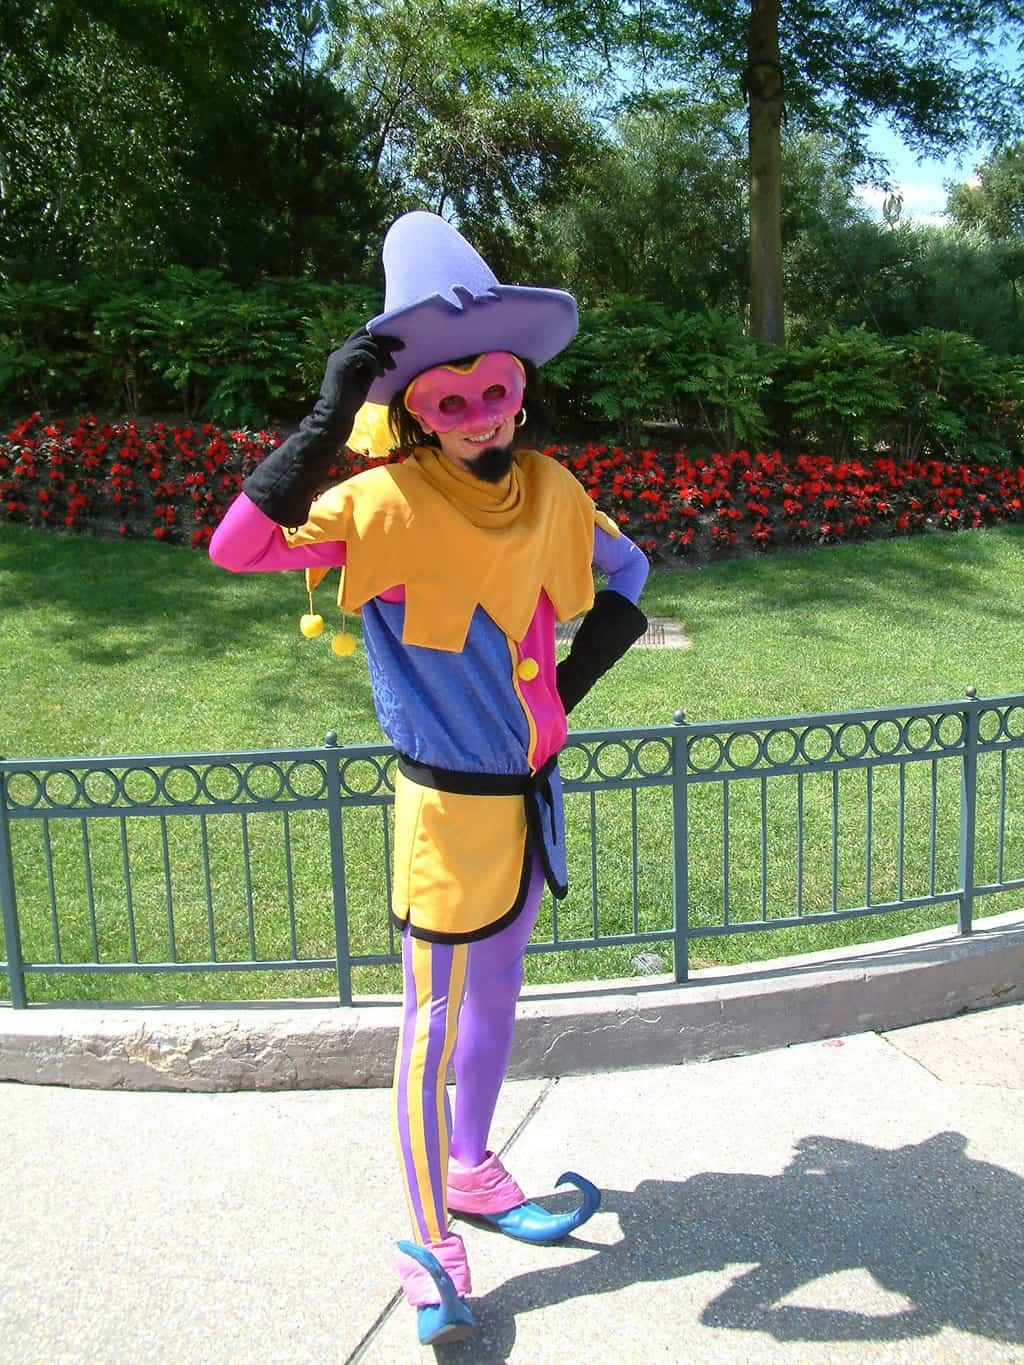 Clopin doens't come out often, but if he is out he can be found in Fantasyland most of the time.